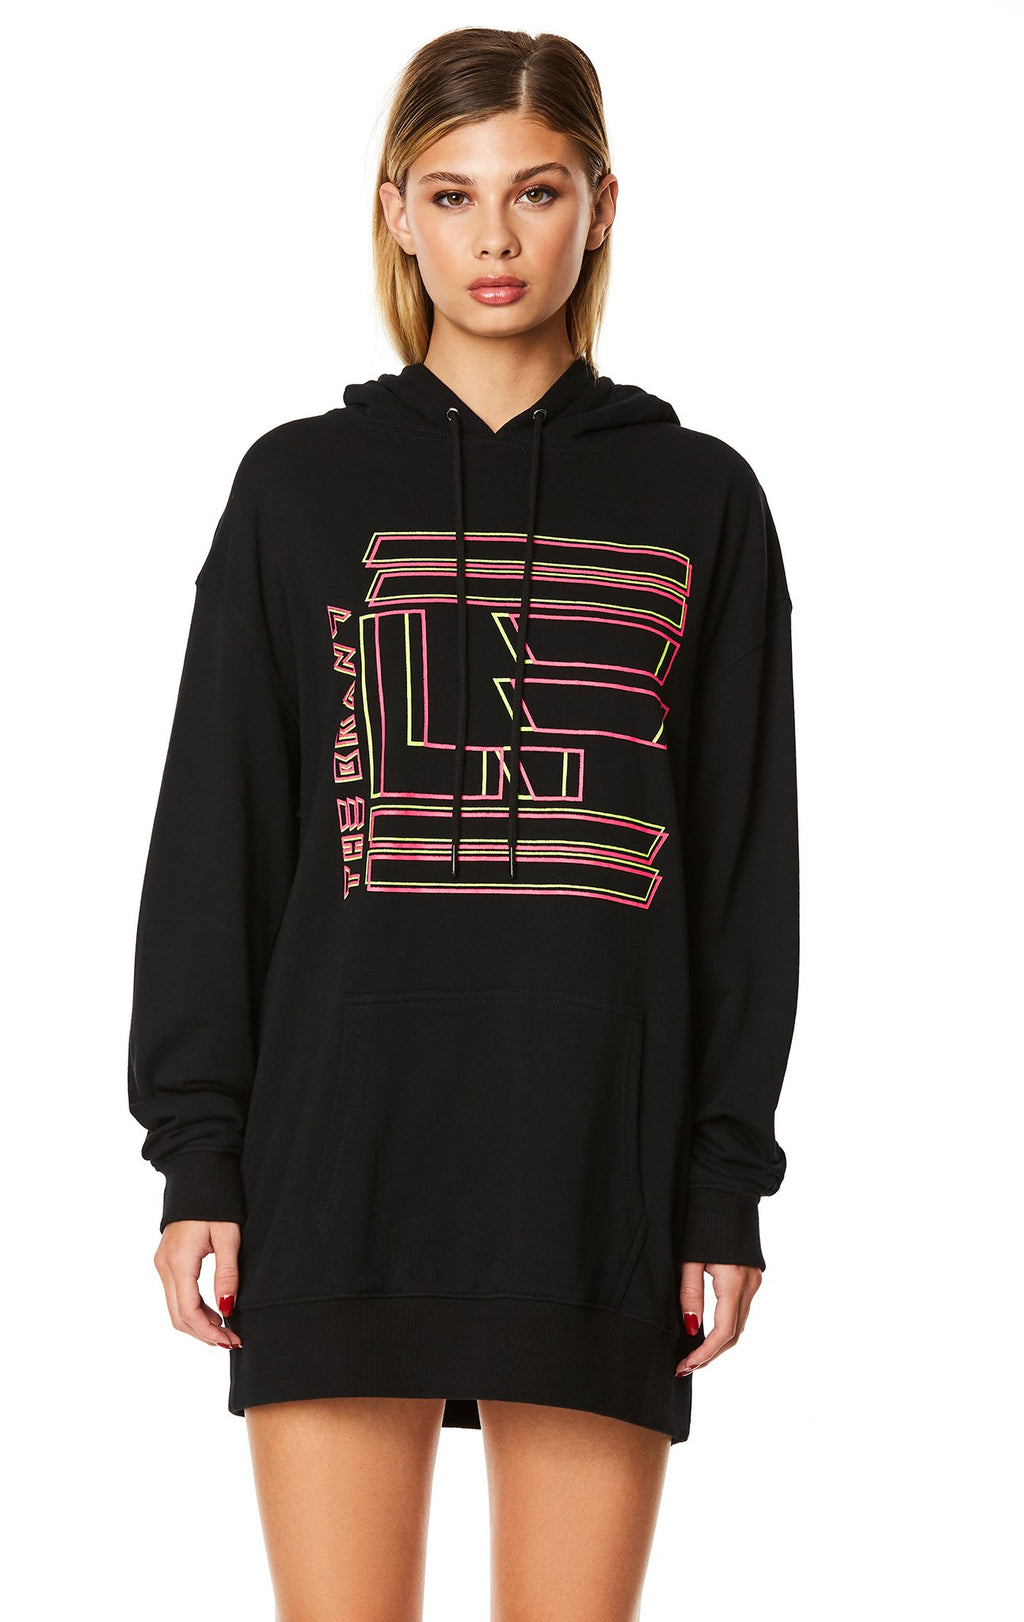 LF THE BRAND HOODED SWEATSHIRT DRESS CROP FRONT